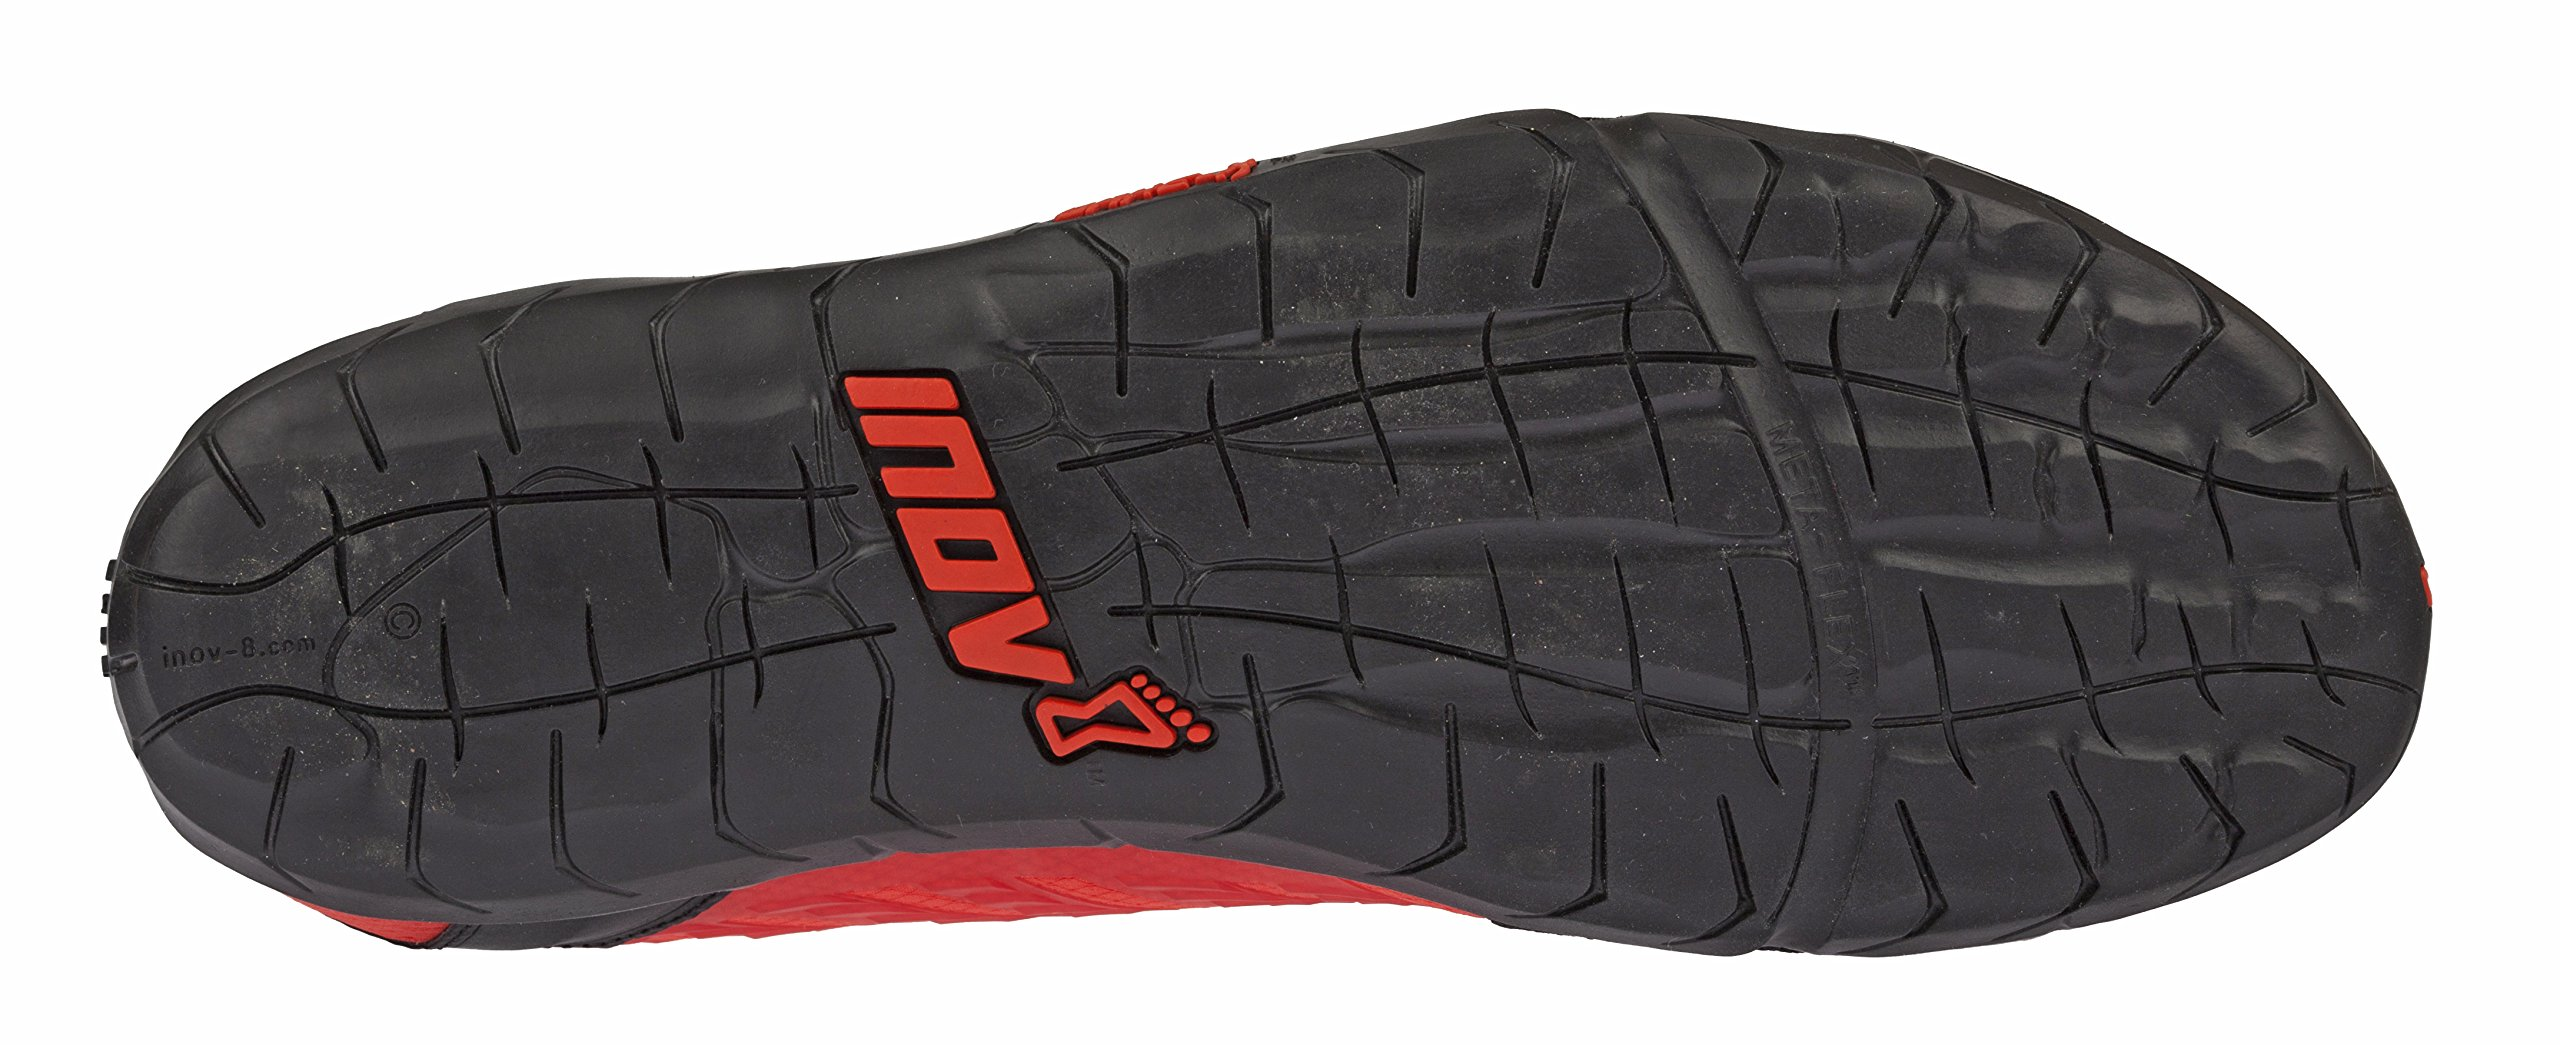 Inov-8 Mens Bare-XF 210 V2 - Barefoot Minimalist Cross Training Shoes - Zero Drop - Wide Toe Box - Versatile Shoe for Powerlifting & Gym - Calisthenics & Martial Arts - Black/Red 8 M US by Inov-8 (Image #4)